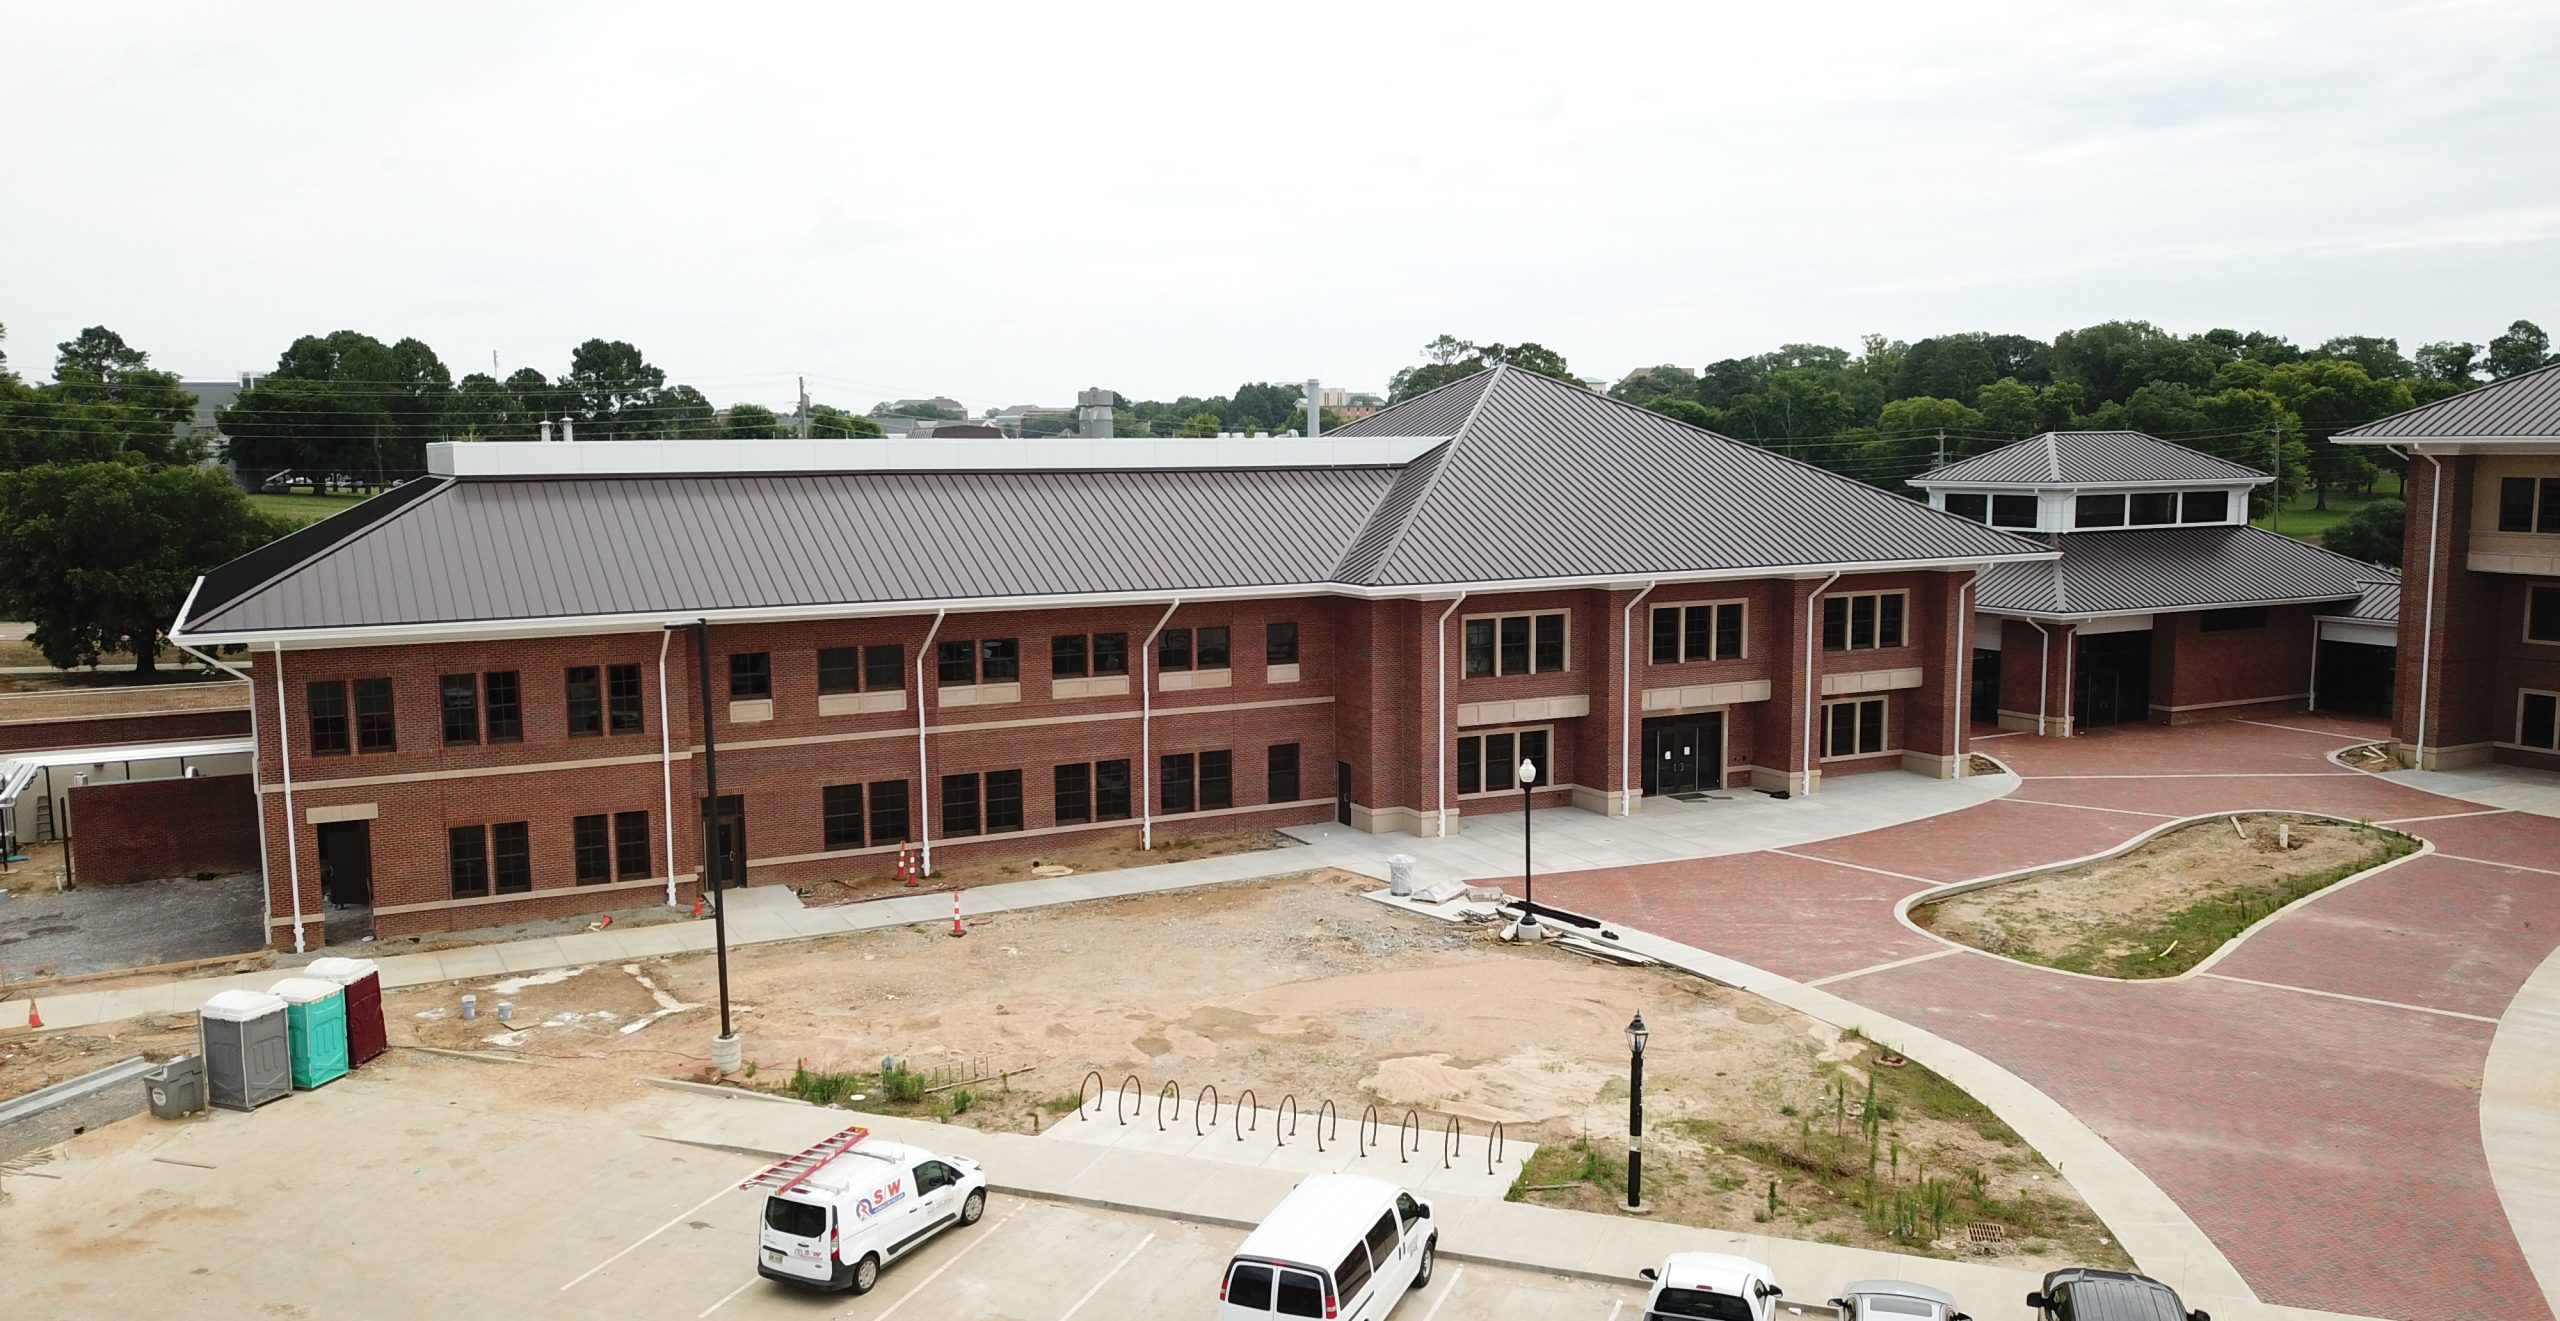 Mississippi State University Poultry Sciences